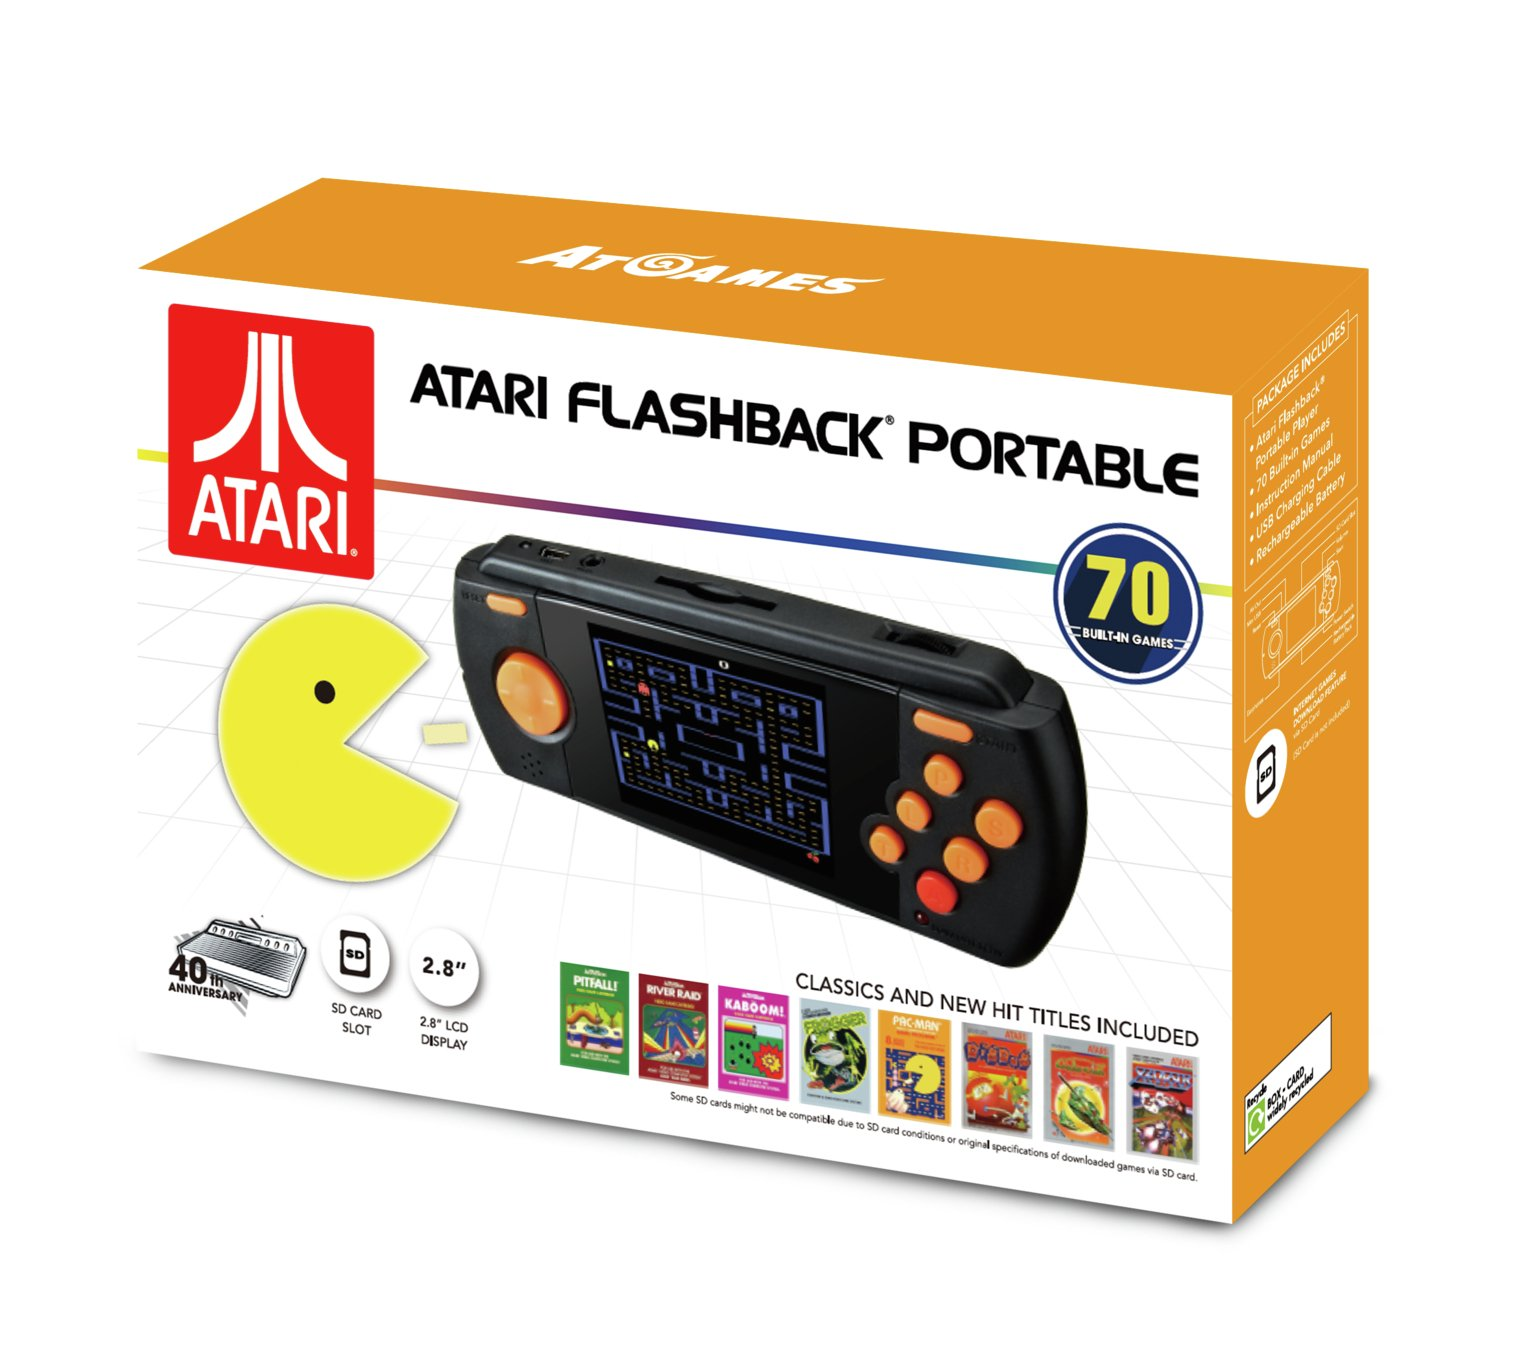 Image of Atari Portable Game Console with 70 Games